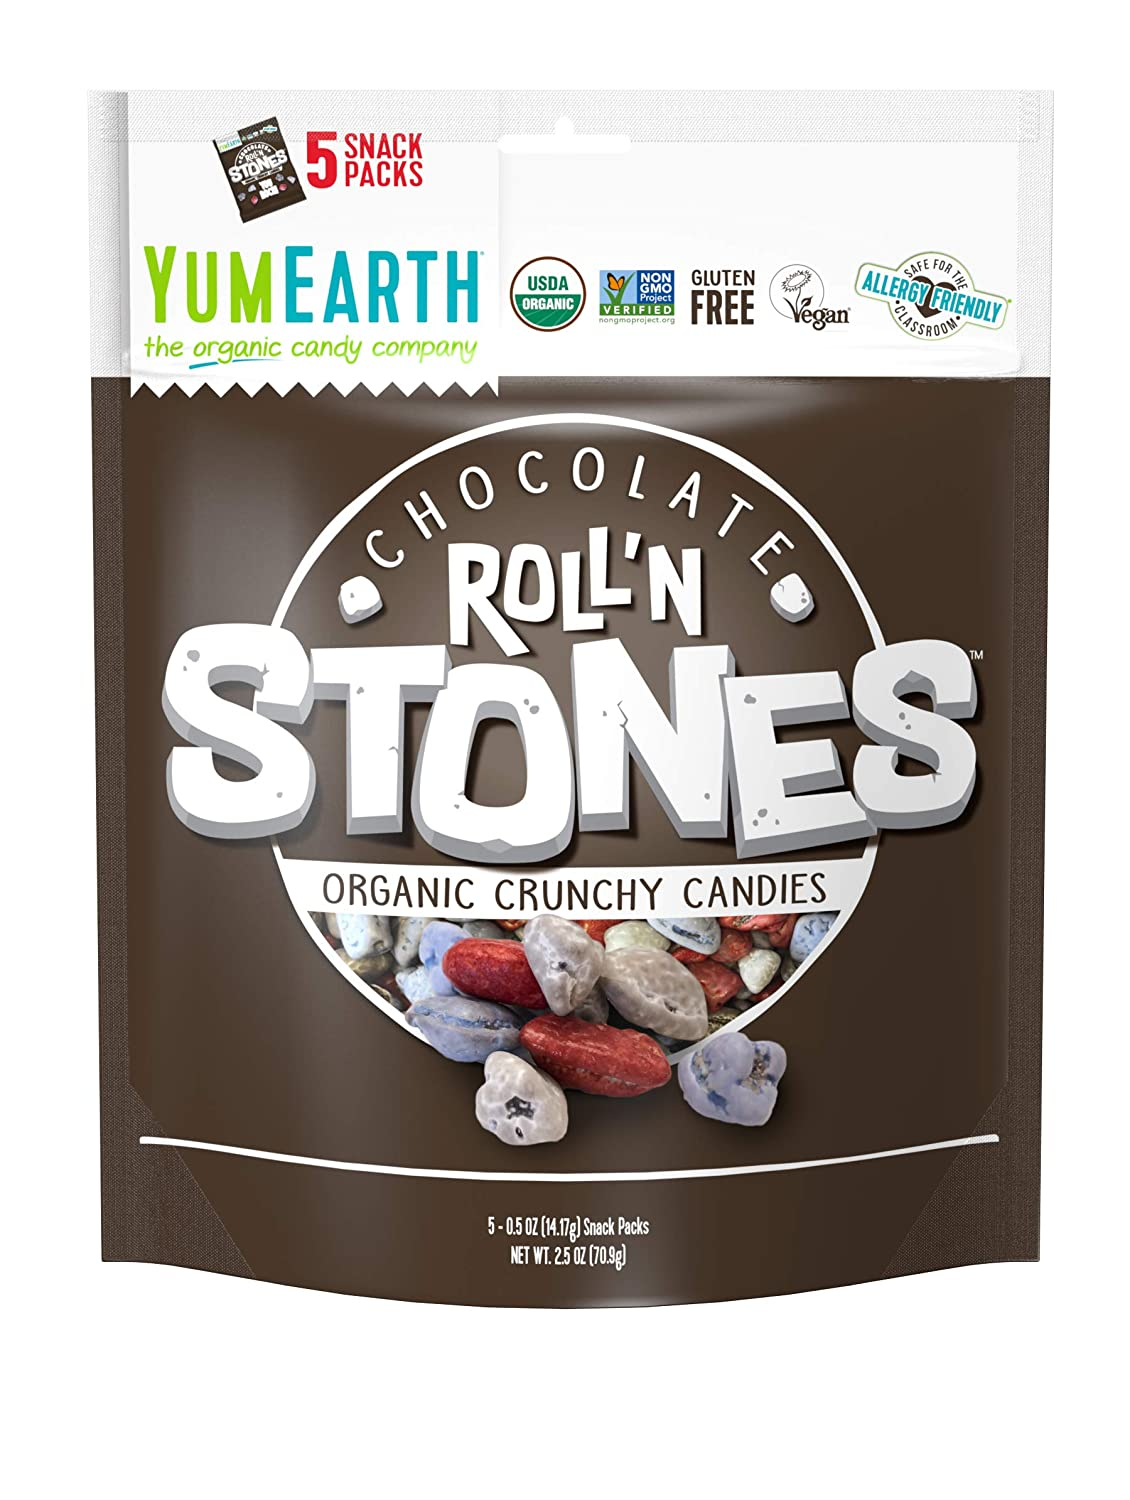 YumEarth Organic Vegan Chocolate Roll'n Stones, 5 Snack Packs per bag, (Pack of 12) - Allergy Friendly, Non GMO, Gluten Free : Grocery & Gourmet Food